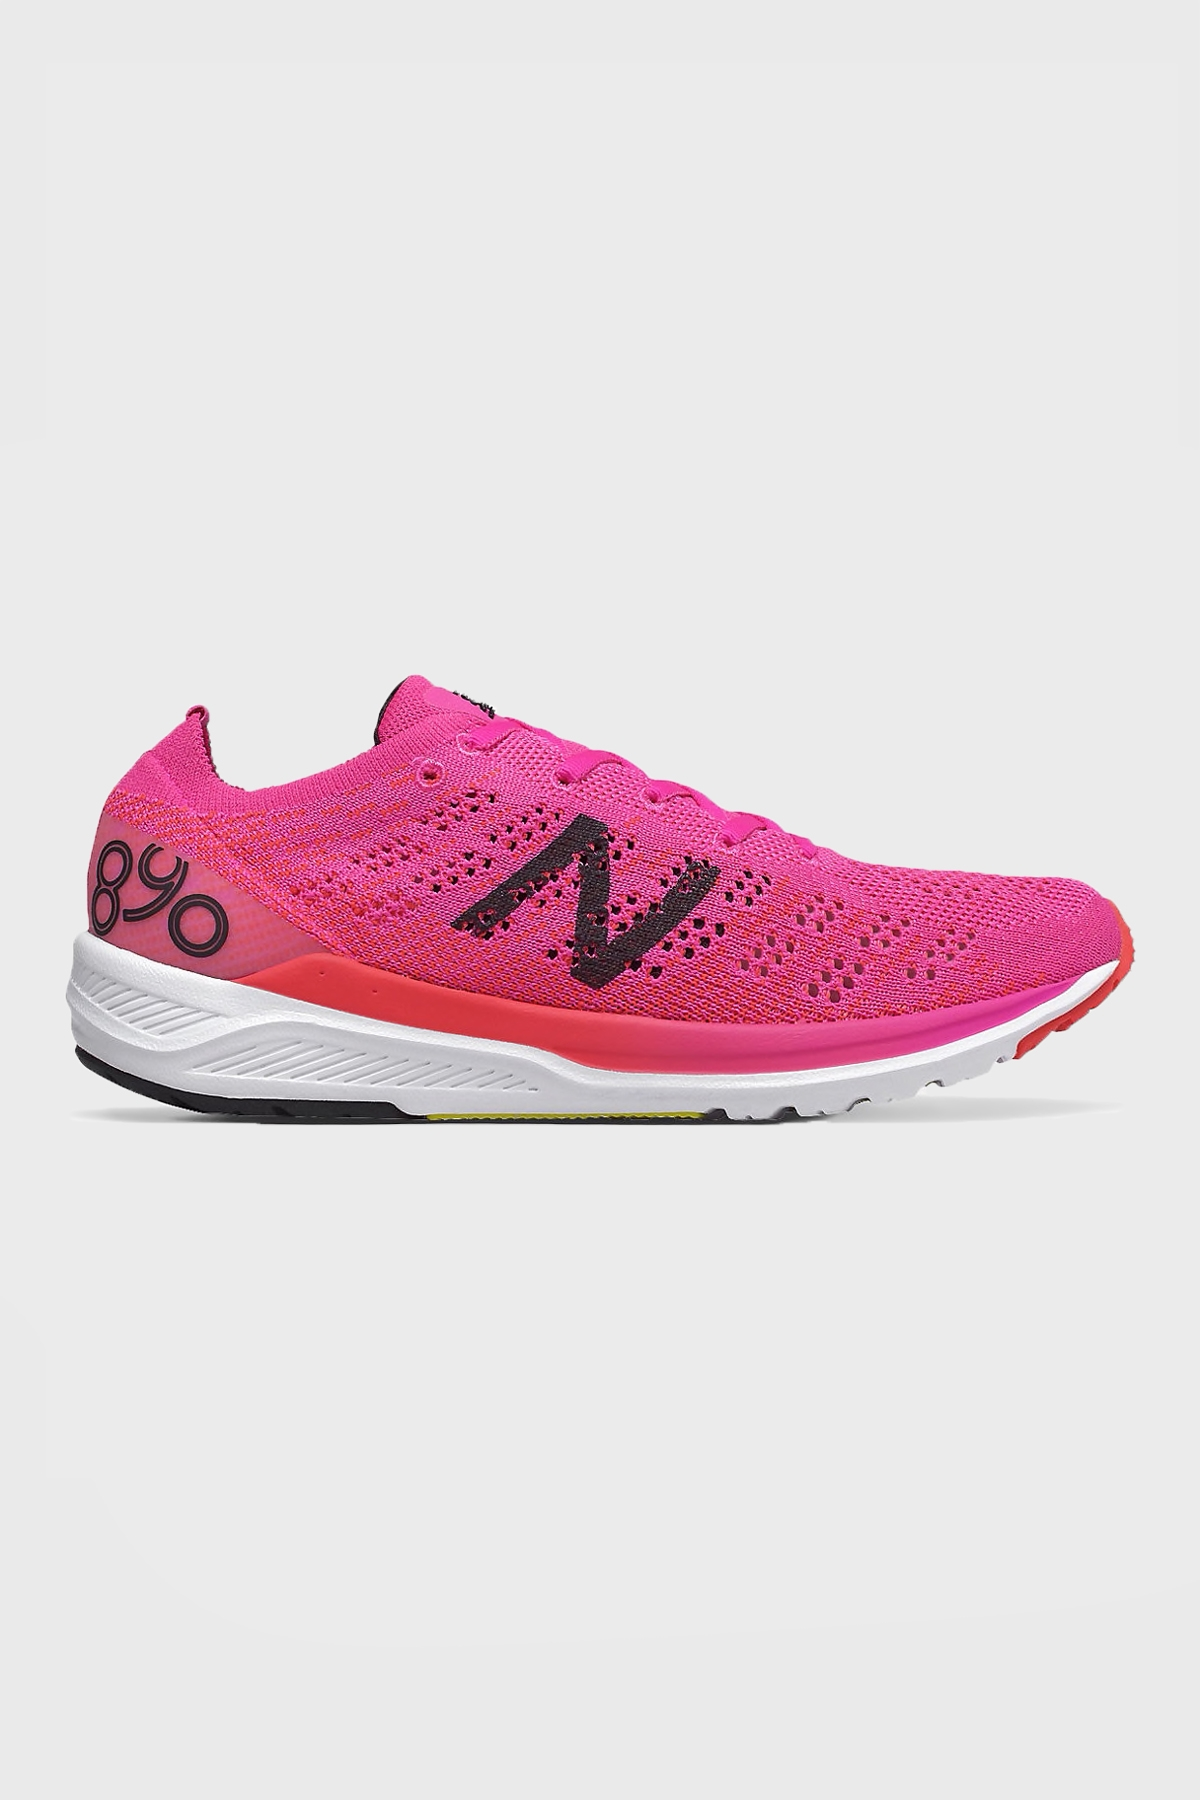 New Balance W - 890 V7 - Peony with Energy Red